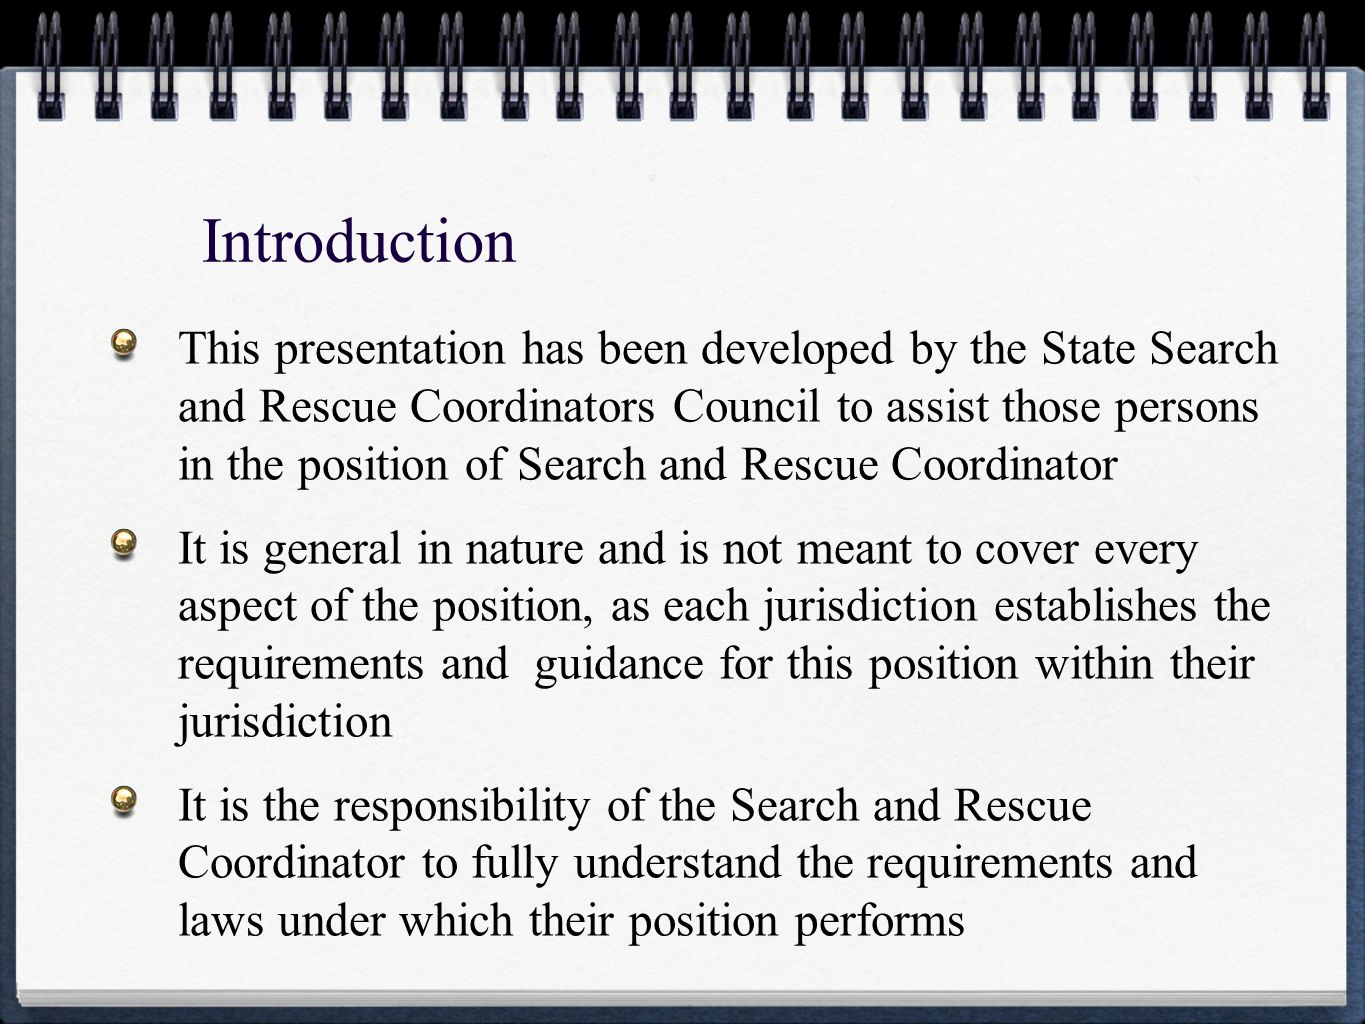 Introduction This presentation has been developed by the State Search and Rescue Coordinators Council to assist those persons in the position of Search and Rescue Coordinator It is general in nature and is not meant to cover every aspect of the position, as each jurisdiction establishes the requirements and guidance for this position within their jurisdiction It is the responsibility of the Search and Rescue Coordinator to fully understand the requirements and laws under which their position performs